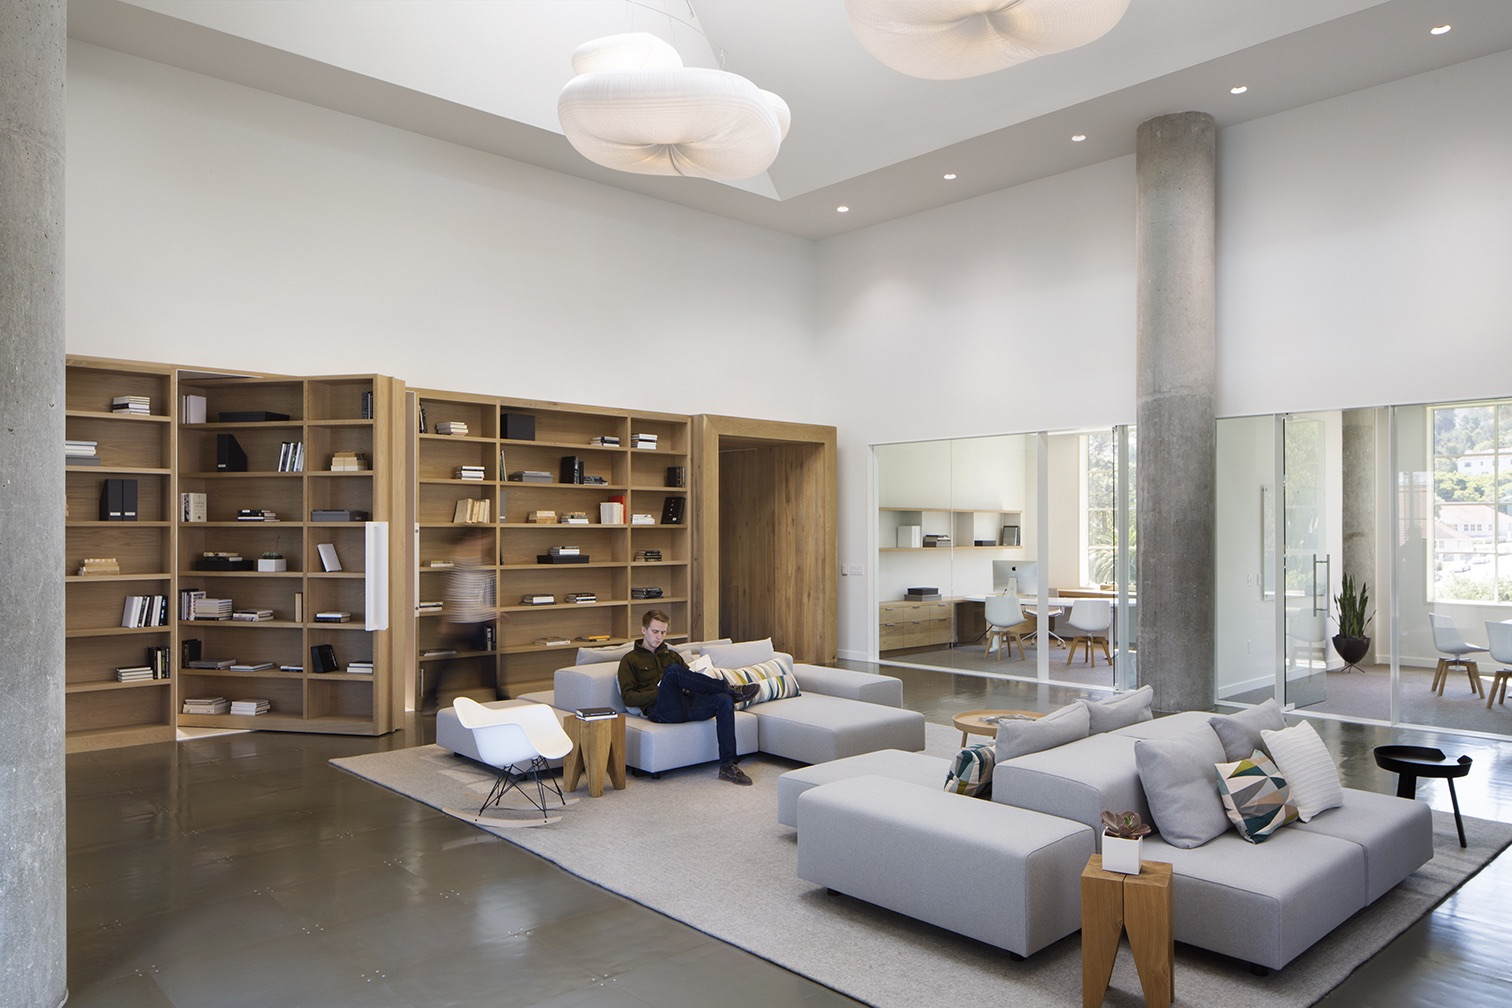 investment-firm-san-francisco-office-10